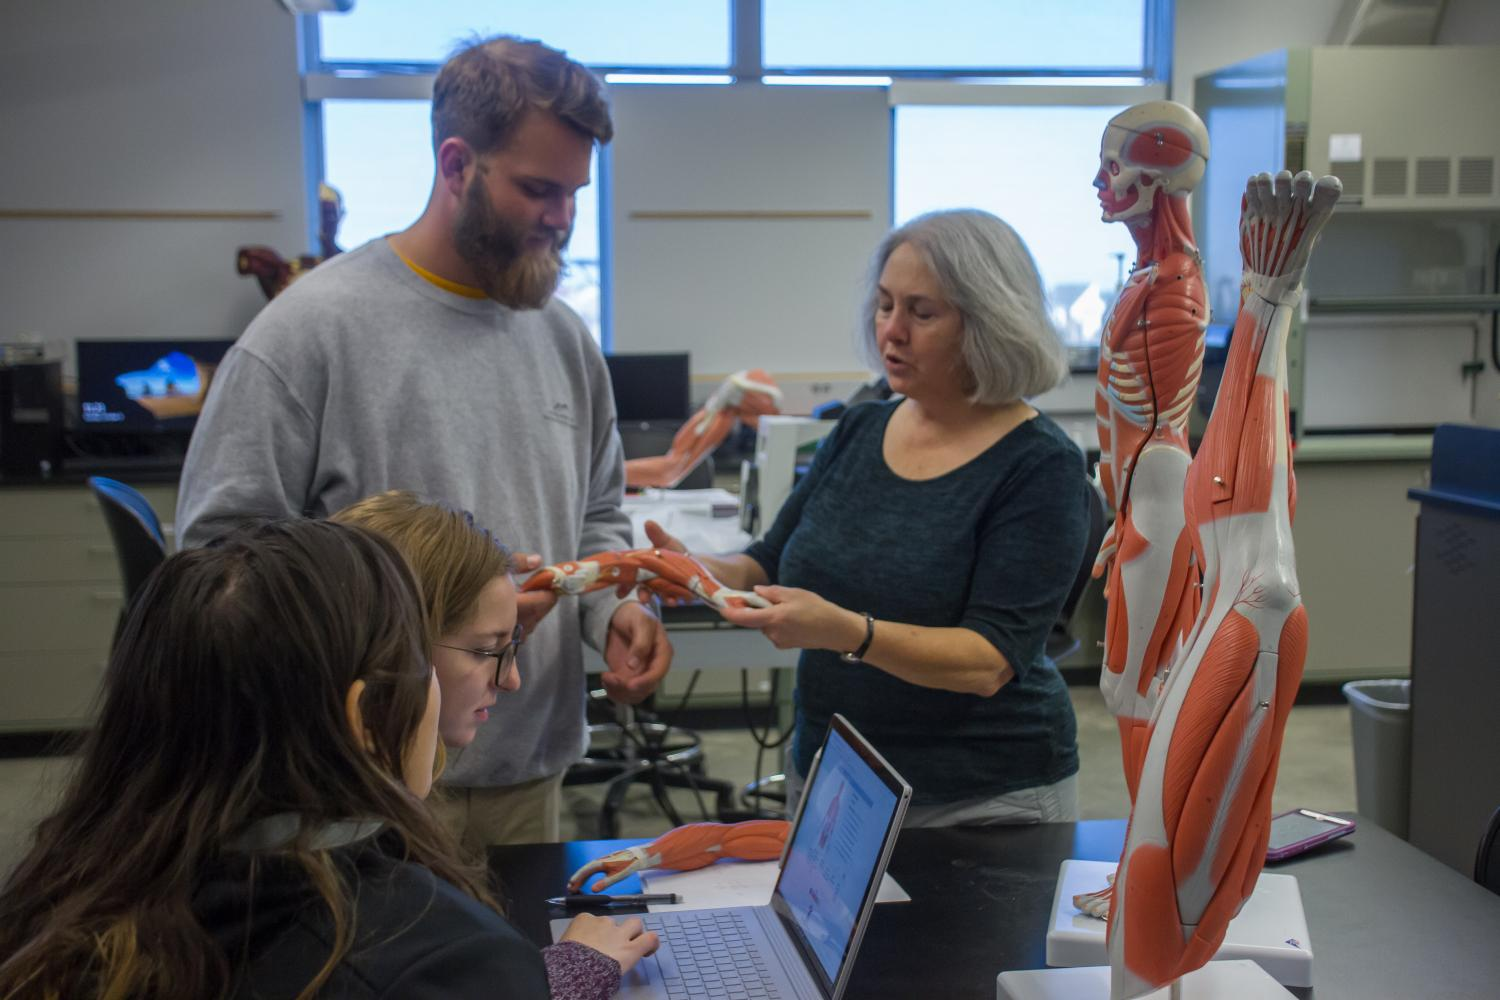 Christine Curran, associate professor in the Biological Sciences department, uses texting in her labs classes.